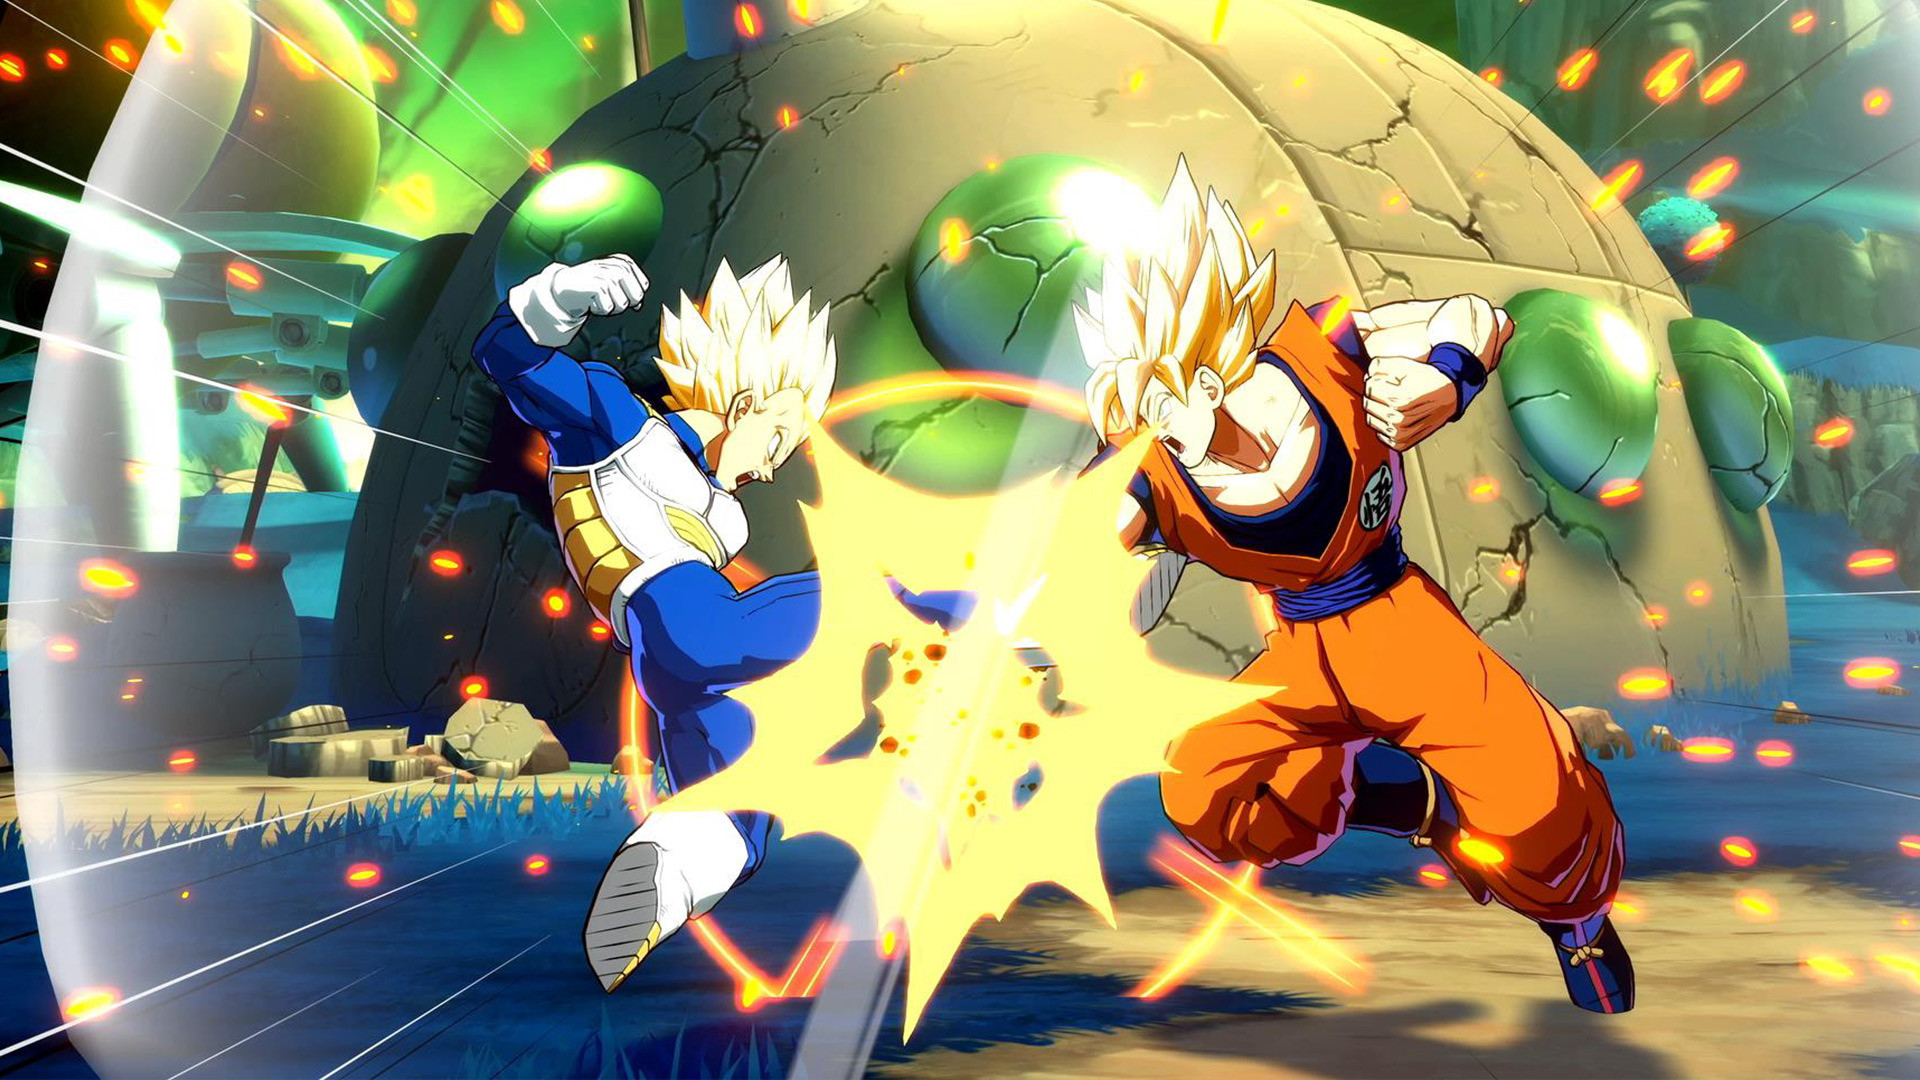 Bandai Namco has announced two old fan favorites that will be added to the  upcoming Dragon Ball Fighter Z game.